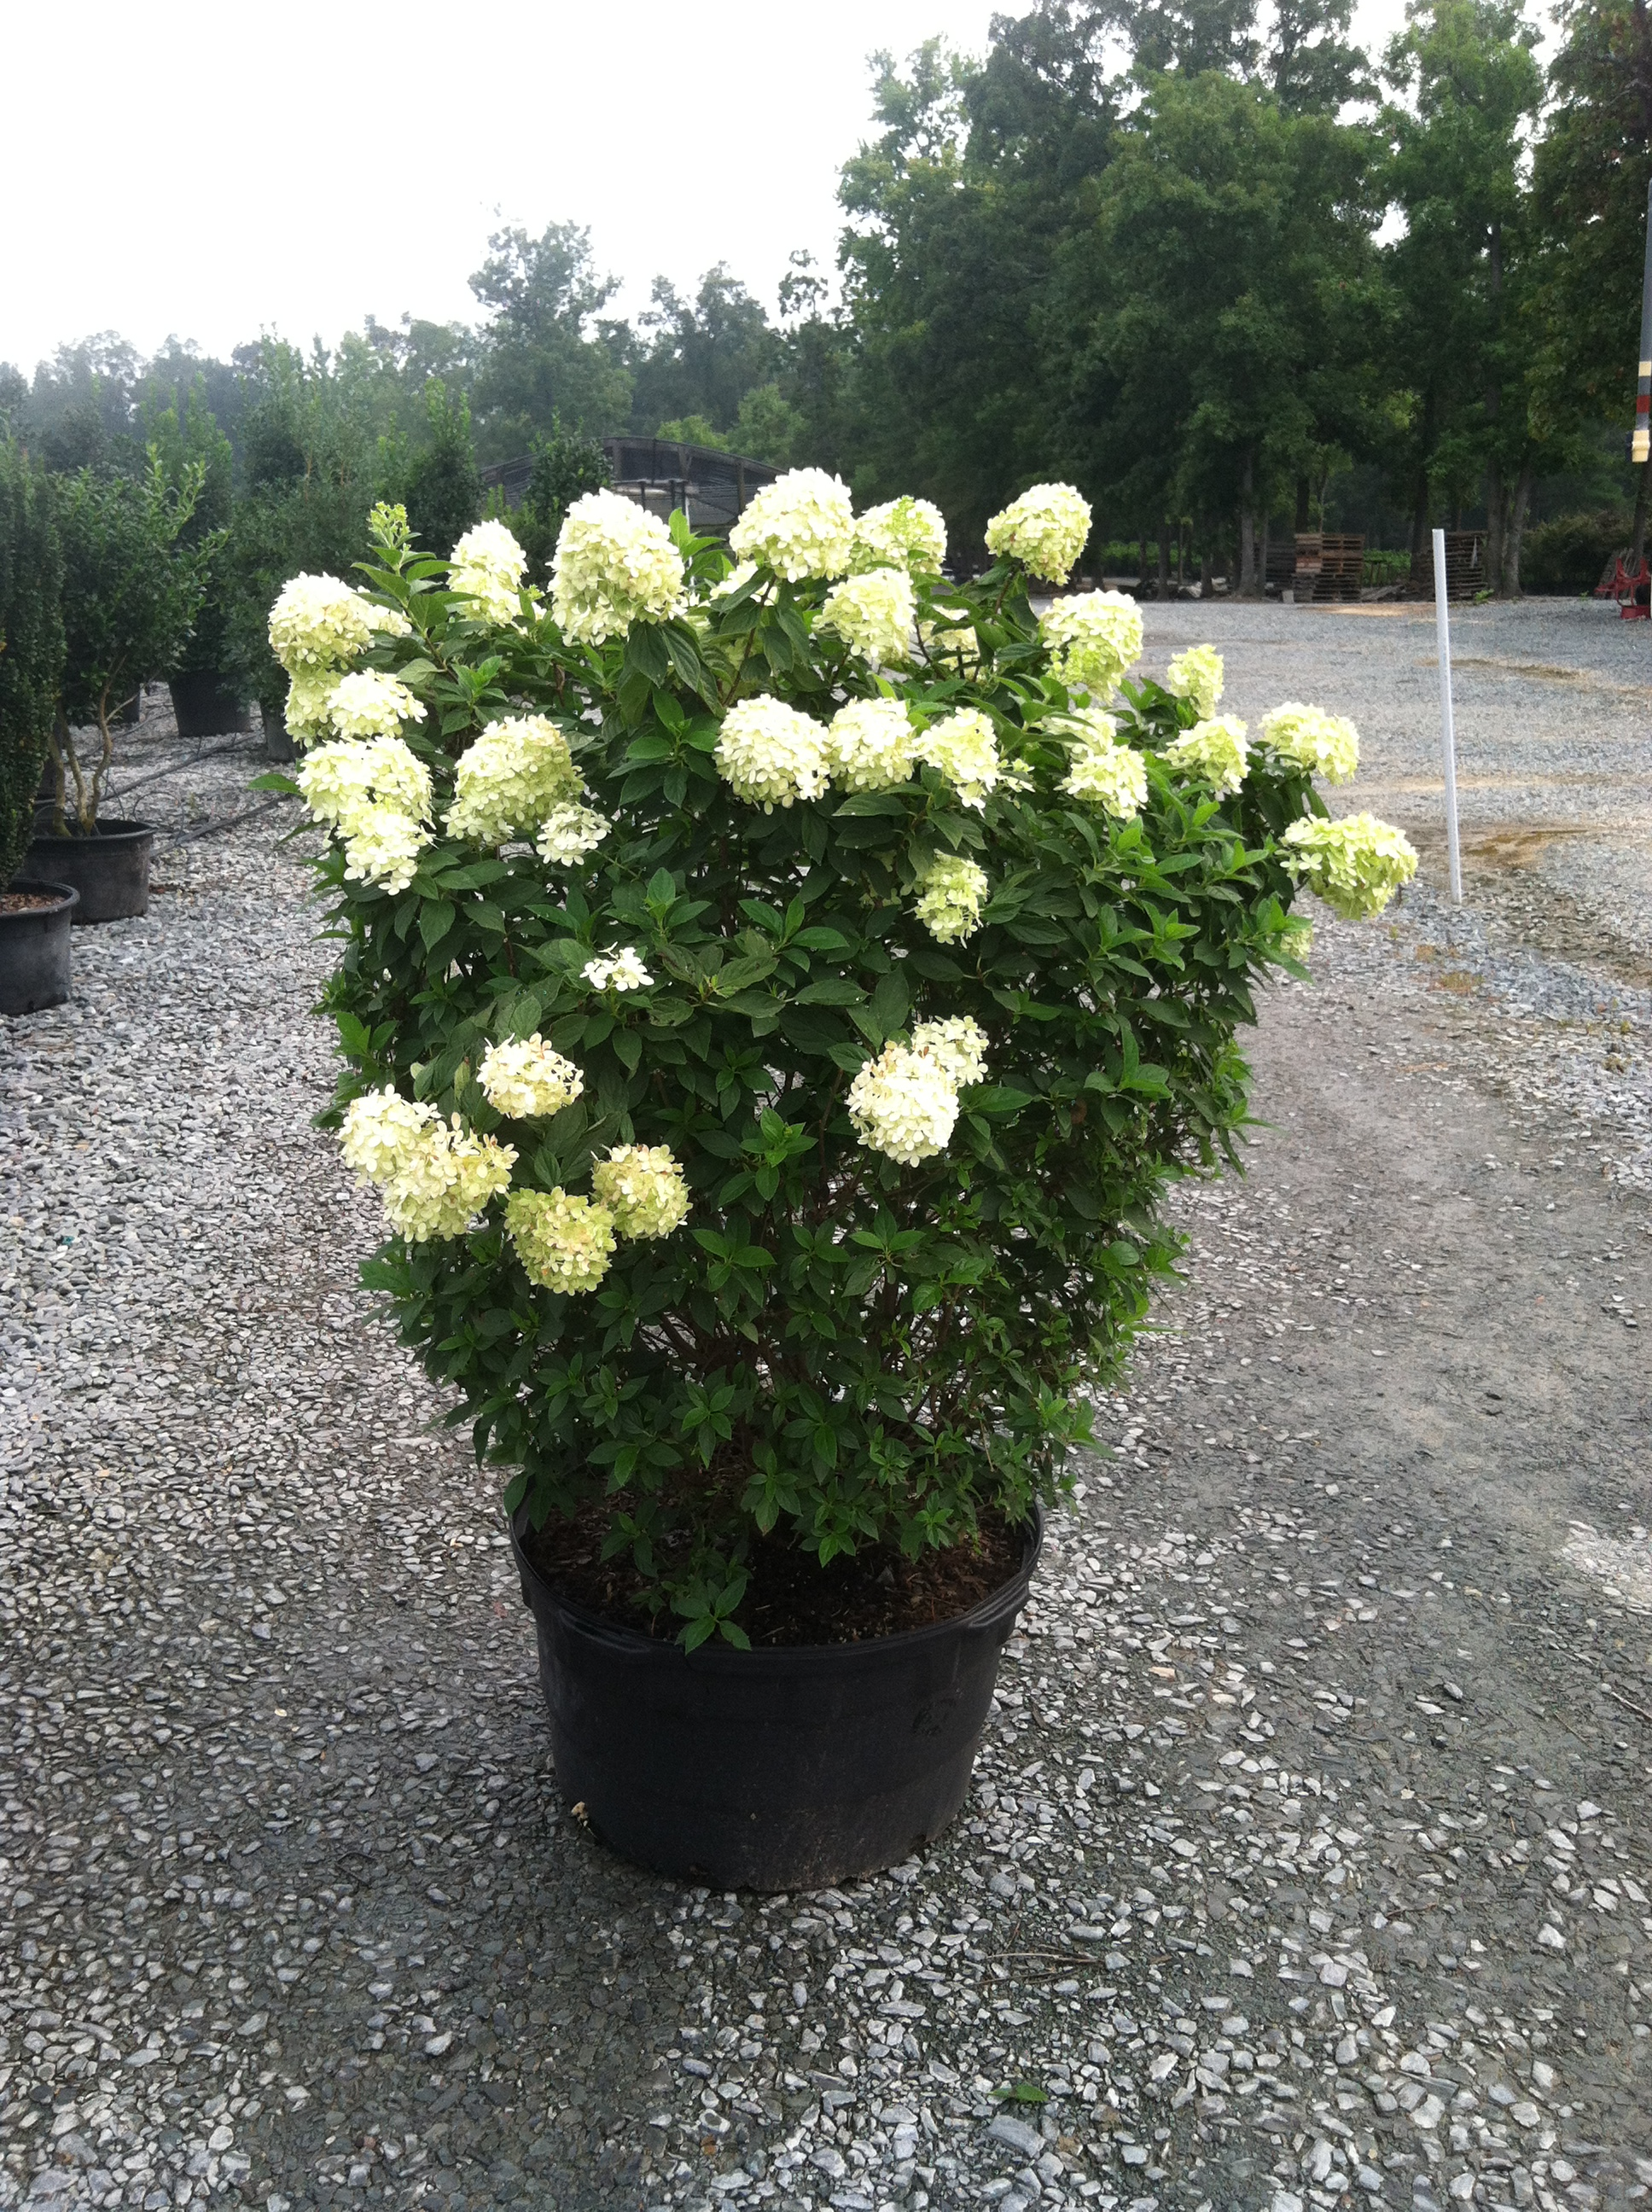 hydrangea limelight 3g hydrangea paniculata limelight pp12874 latham 39 s nursery. Black Bedroom Furniture Sets. Home Design Ideas